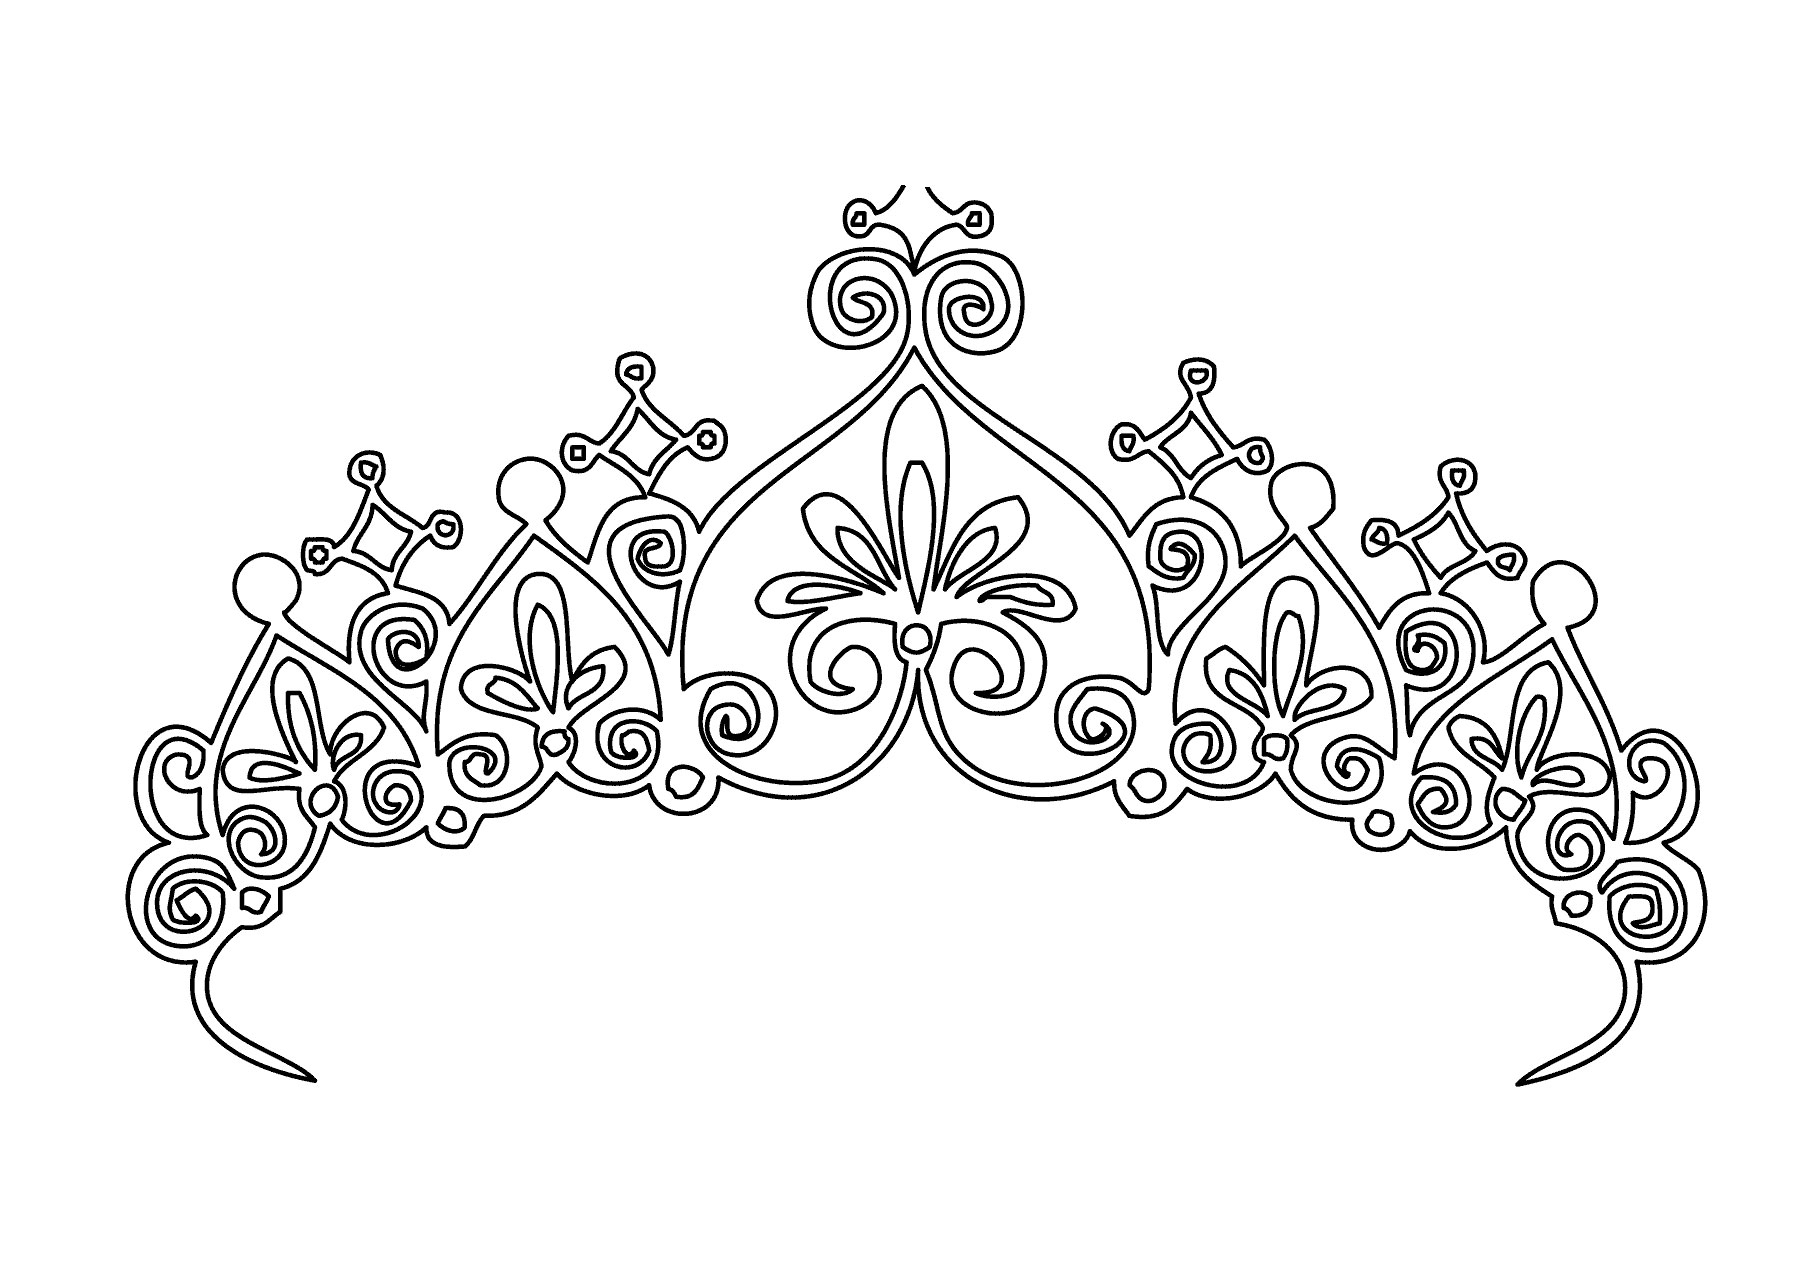 Line Drawing Crown : Line drawing of a crown at getdrawings free for